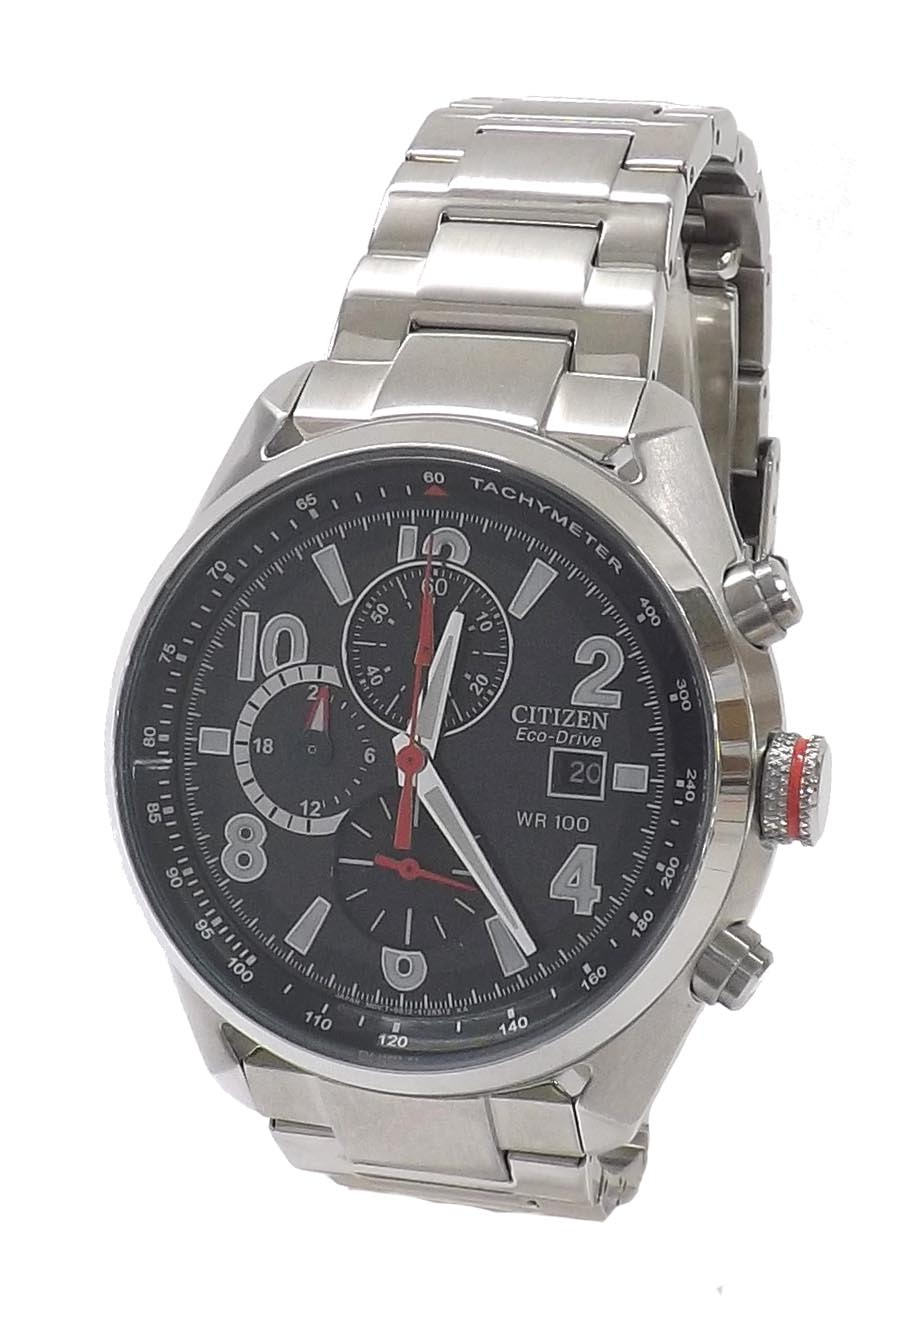 Citizen Eco Drive Wr 100 Chronograph Stainless Steel Regarding Citizen Eco Drive Wr100 Manual